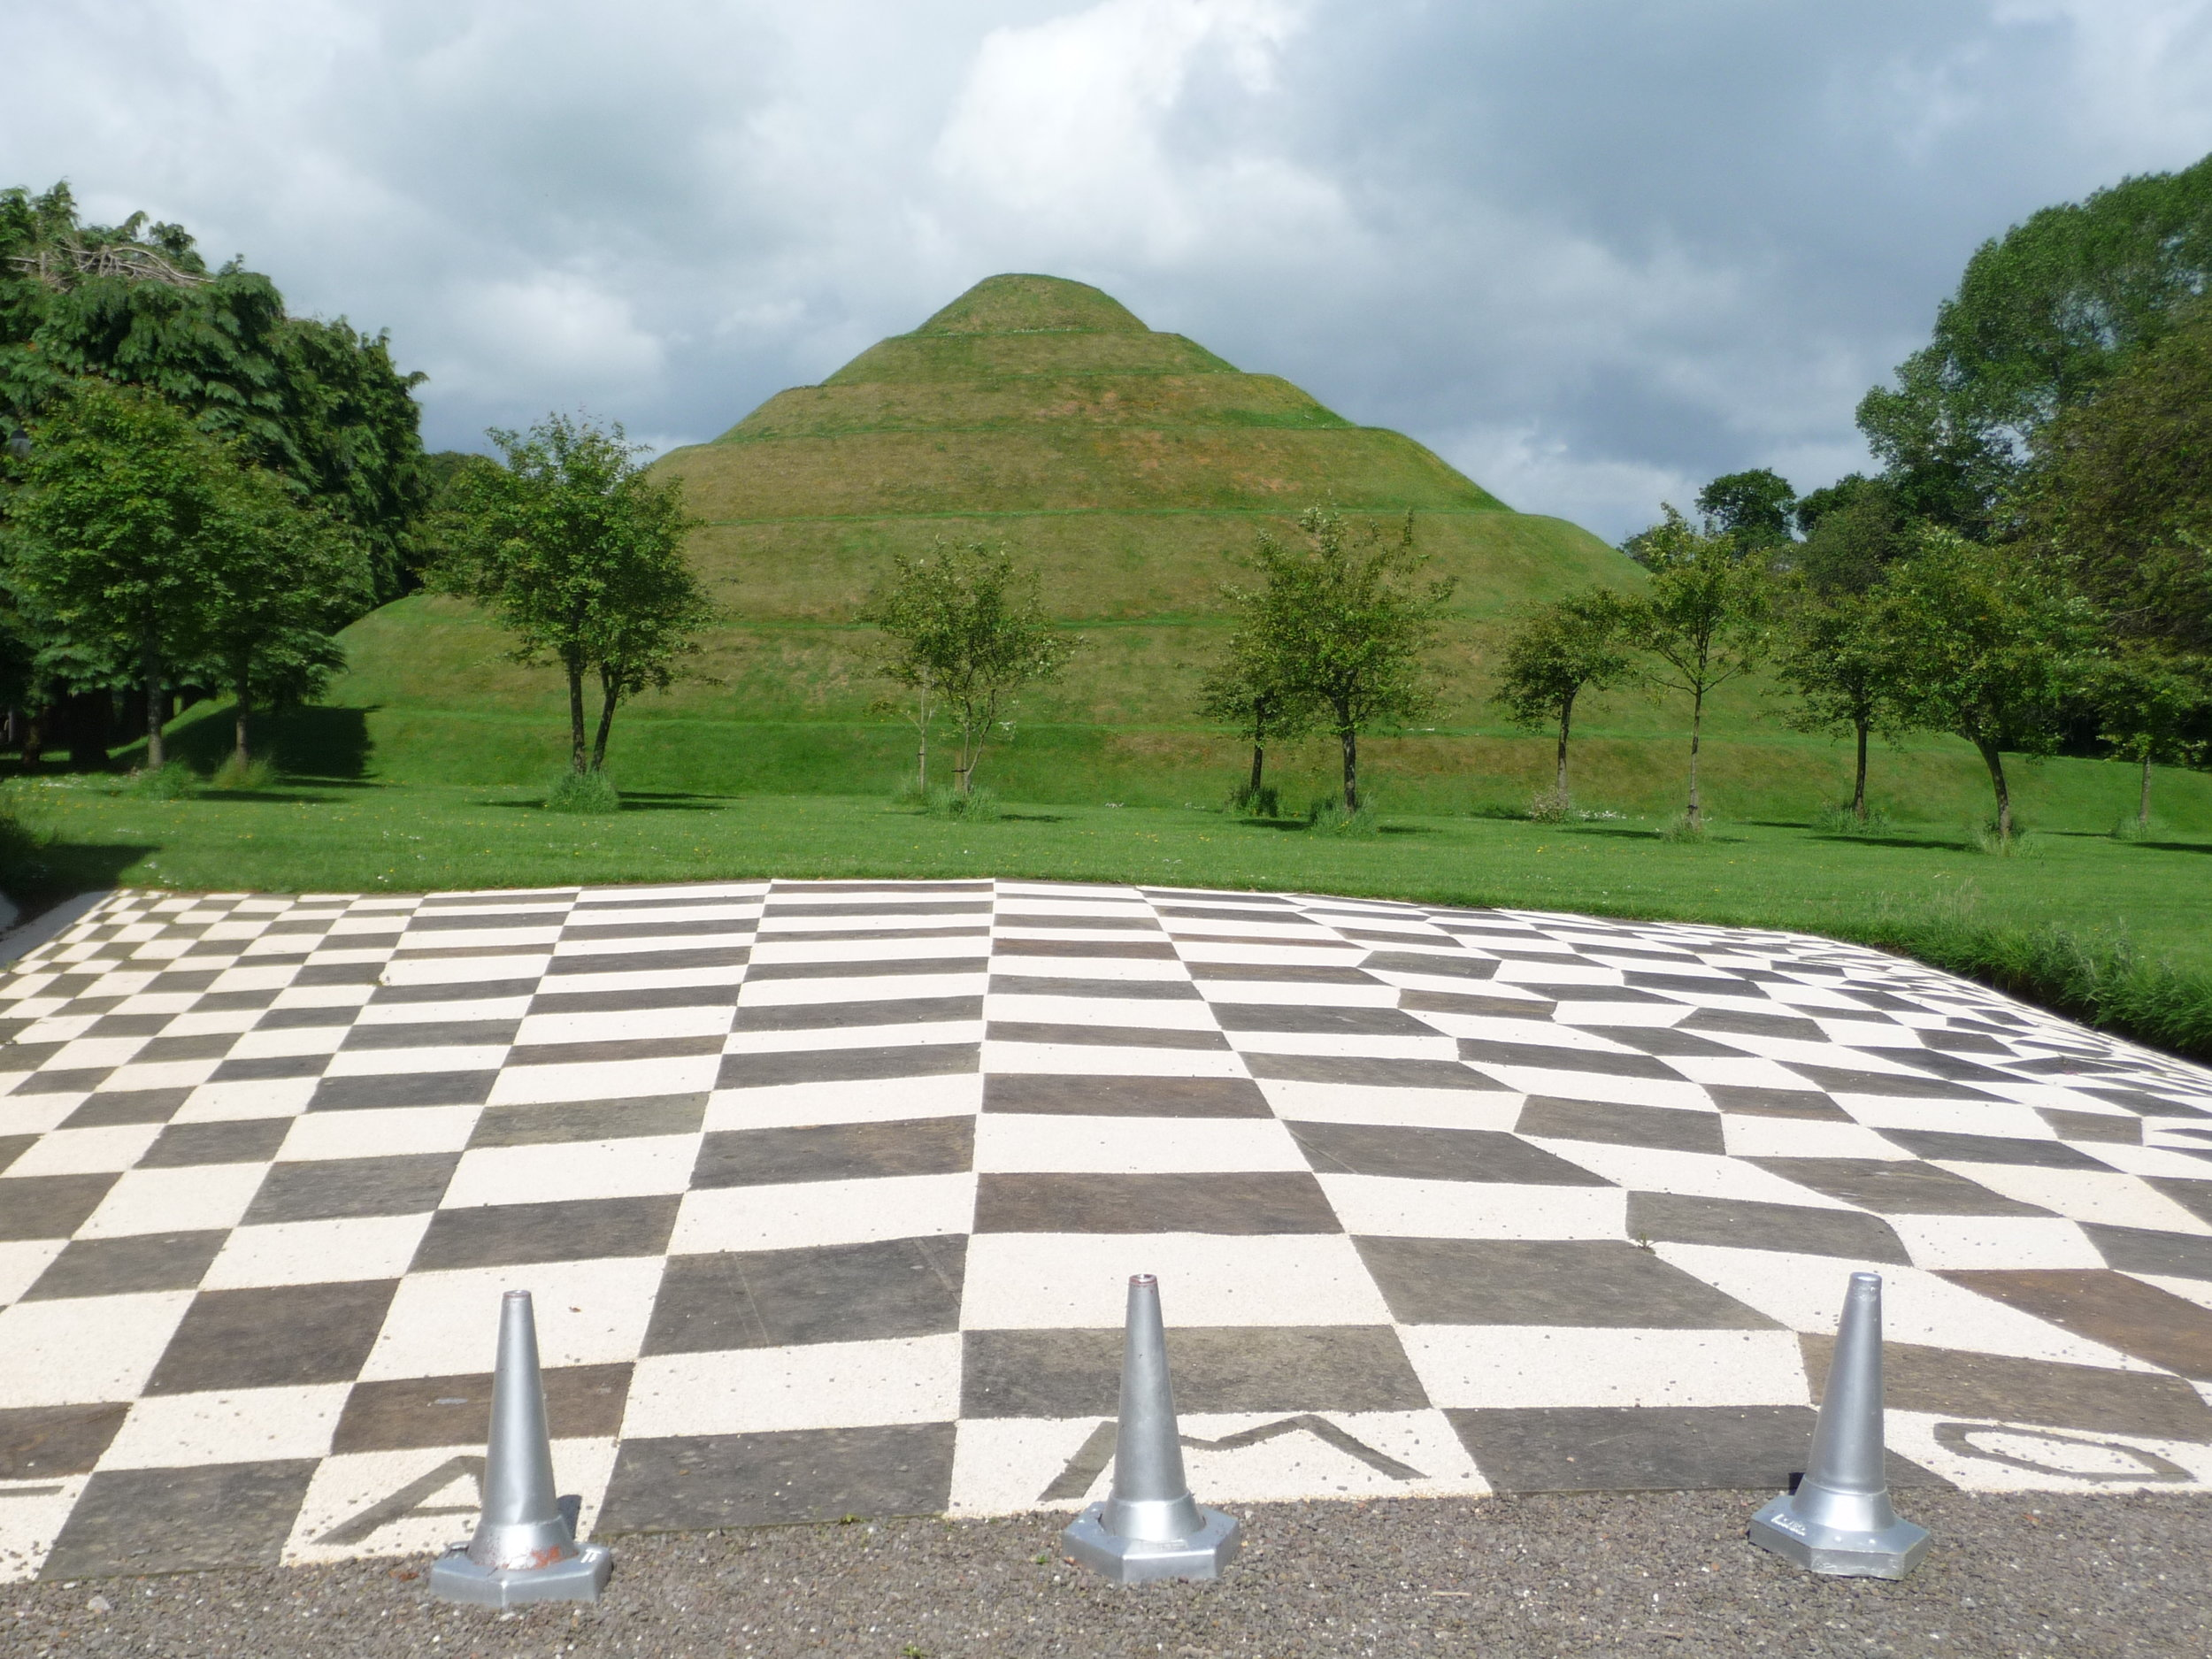 THE GLORIOUS GARDENS OF SCOTLAND by Karin Stanley  The Garden of Cosmic Speculation - created by Charles Jencks and Maggie Kewsick